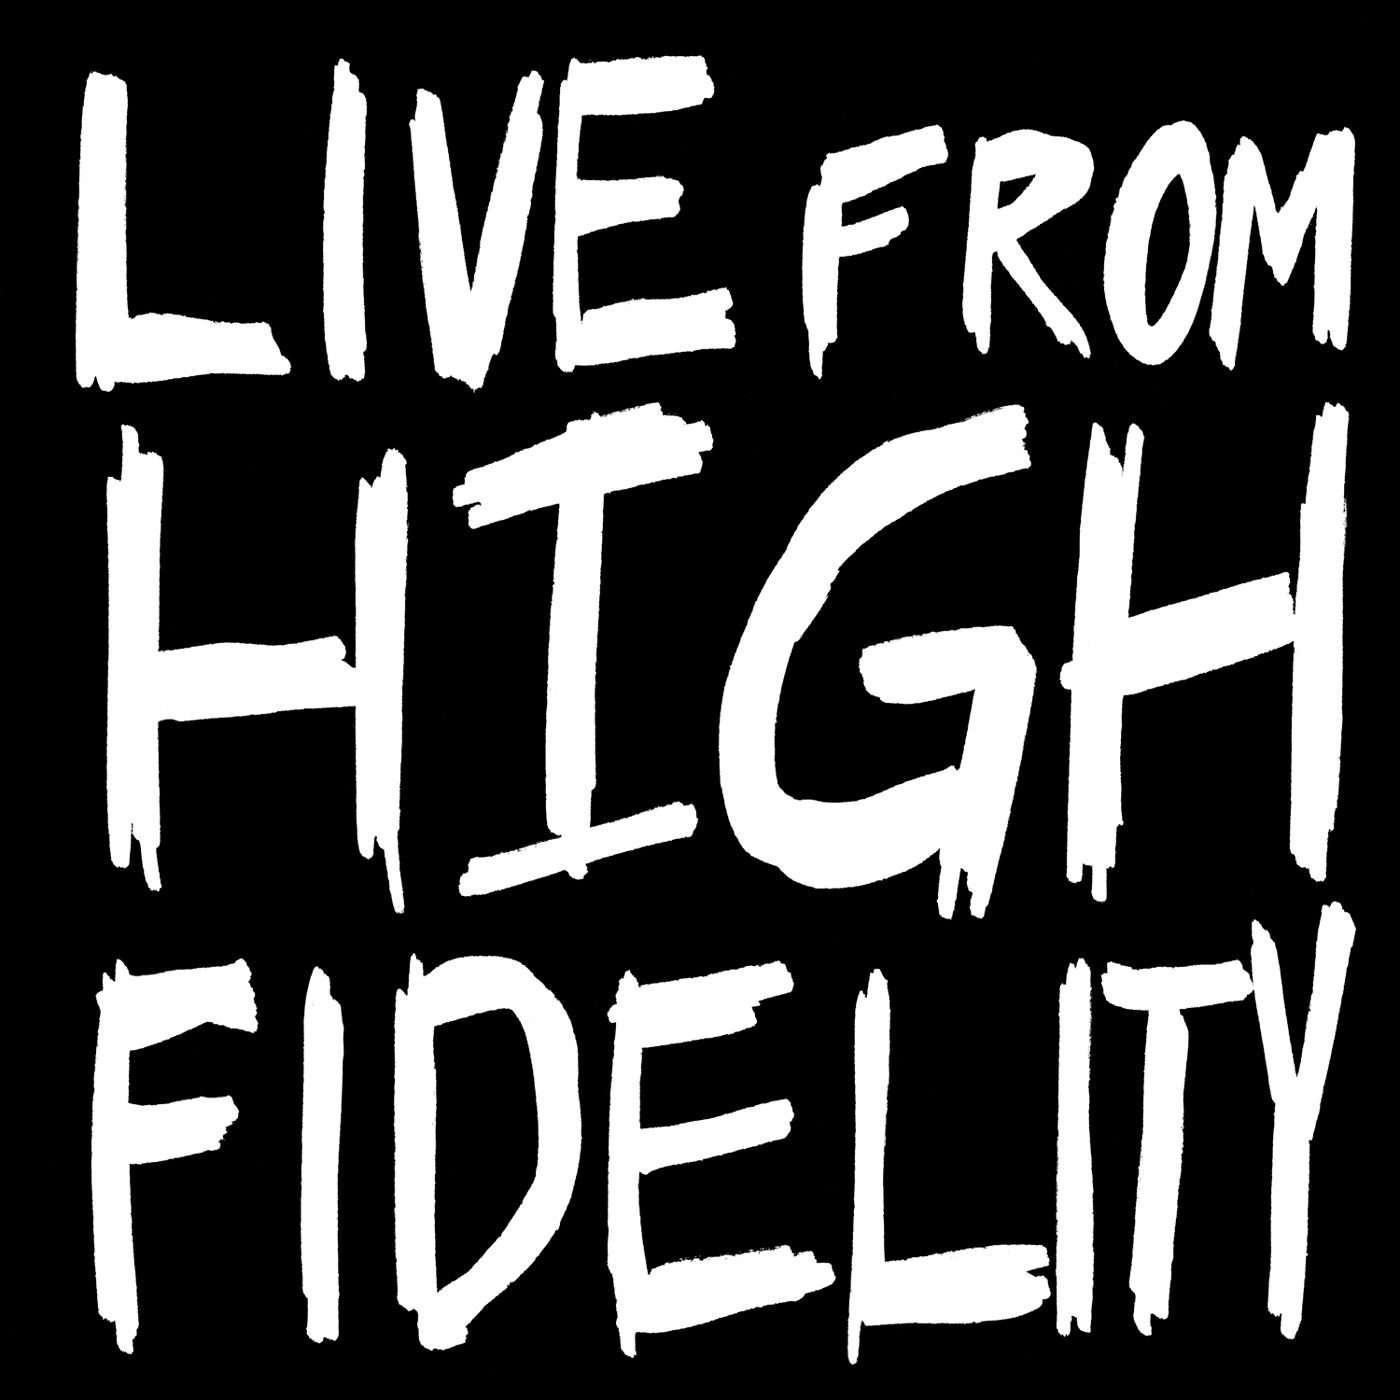 Live from High Fidelity